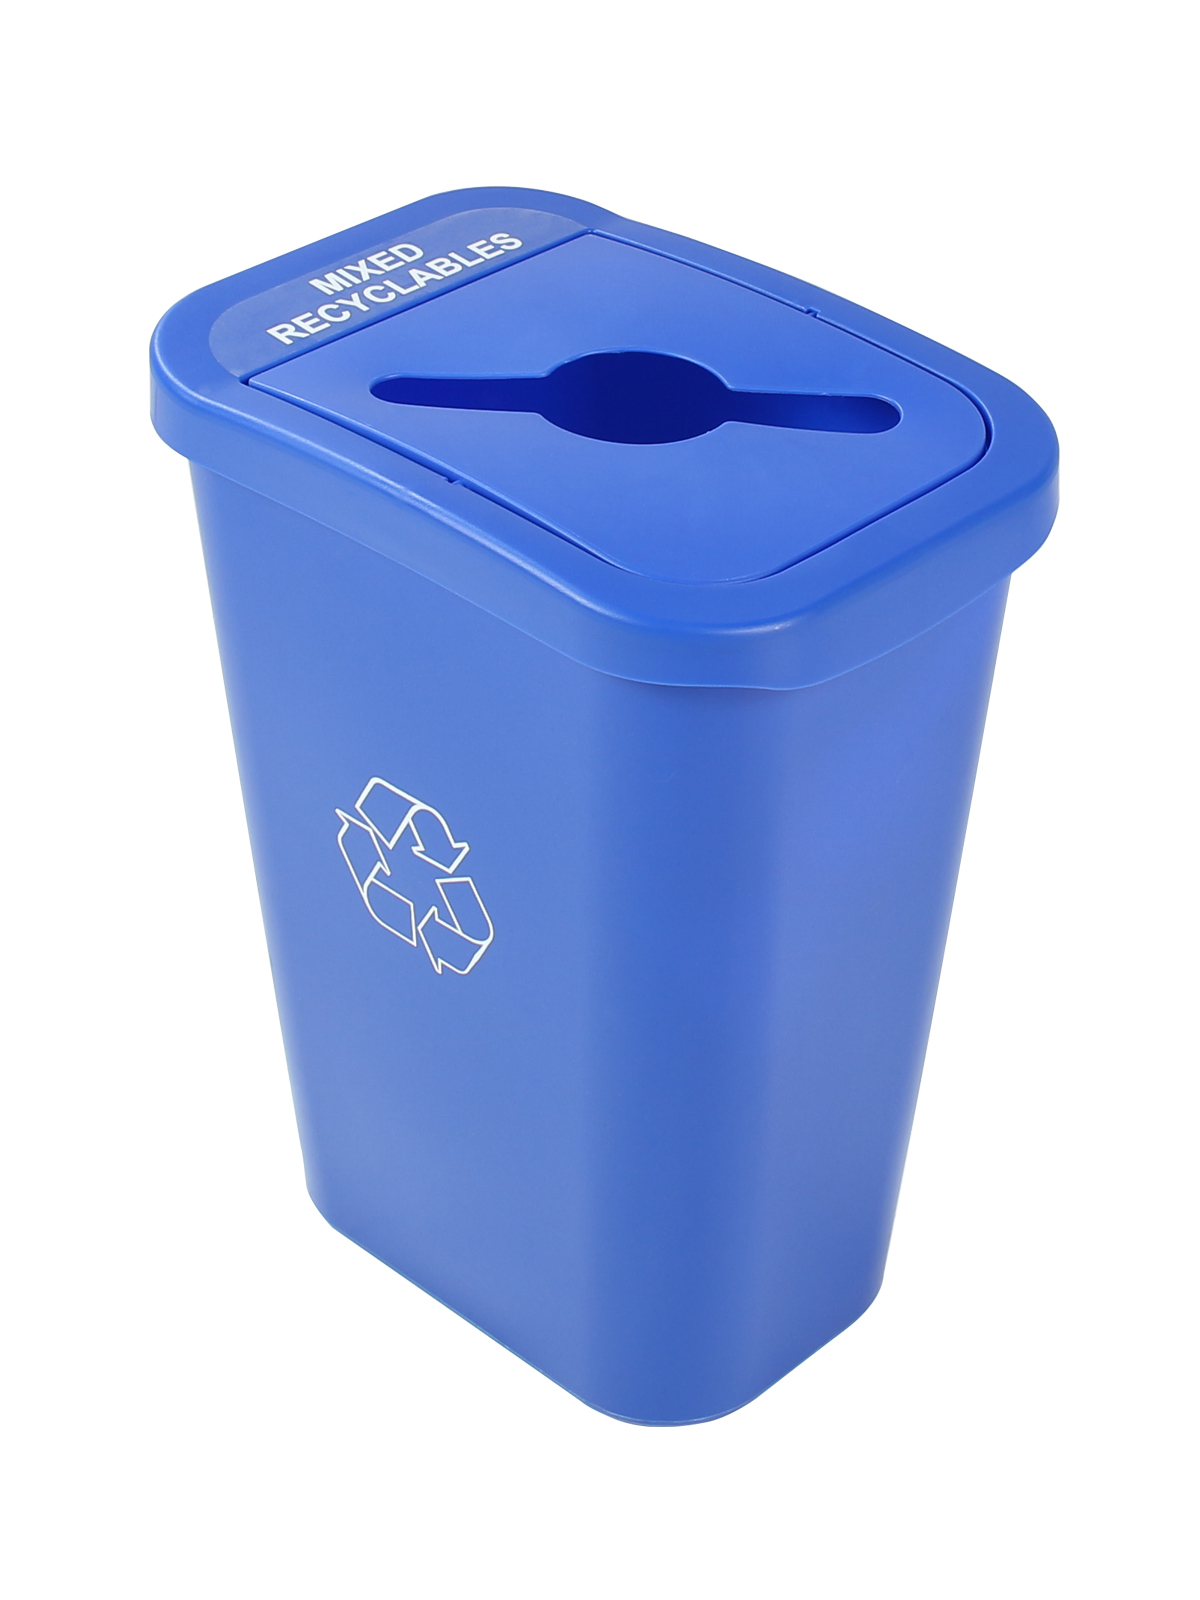 BILLI BOX - SINGLE 10 G - MIXED - BLUE - MIXED RECYCLABLES title=